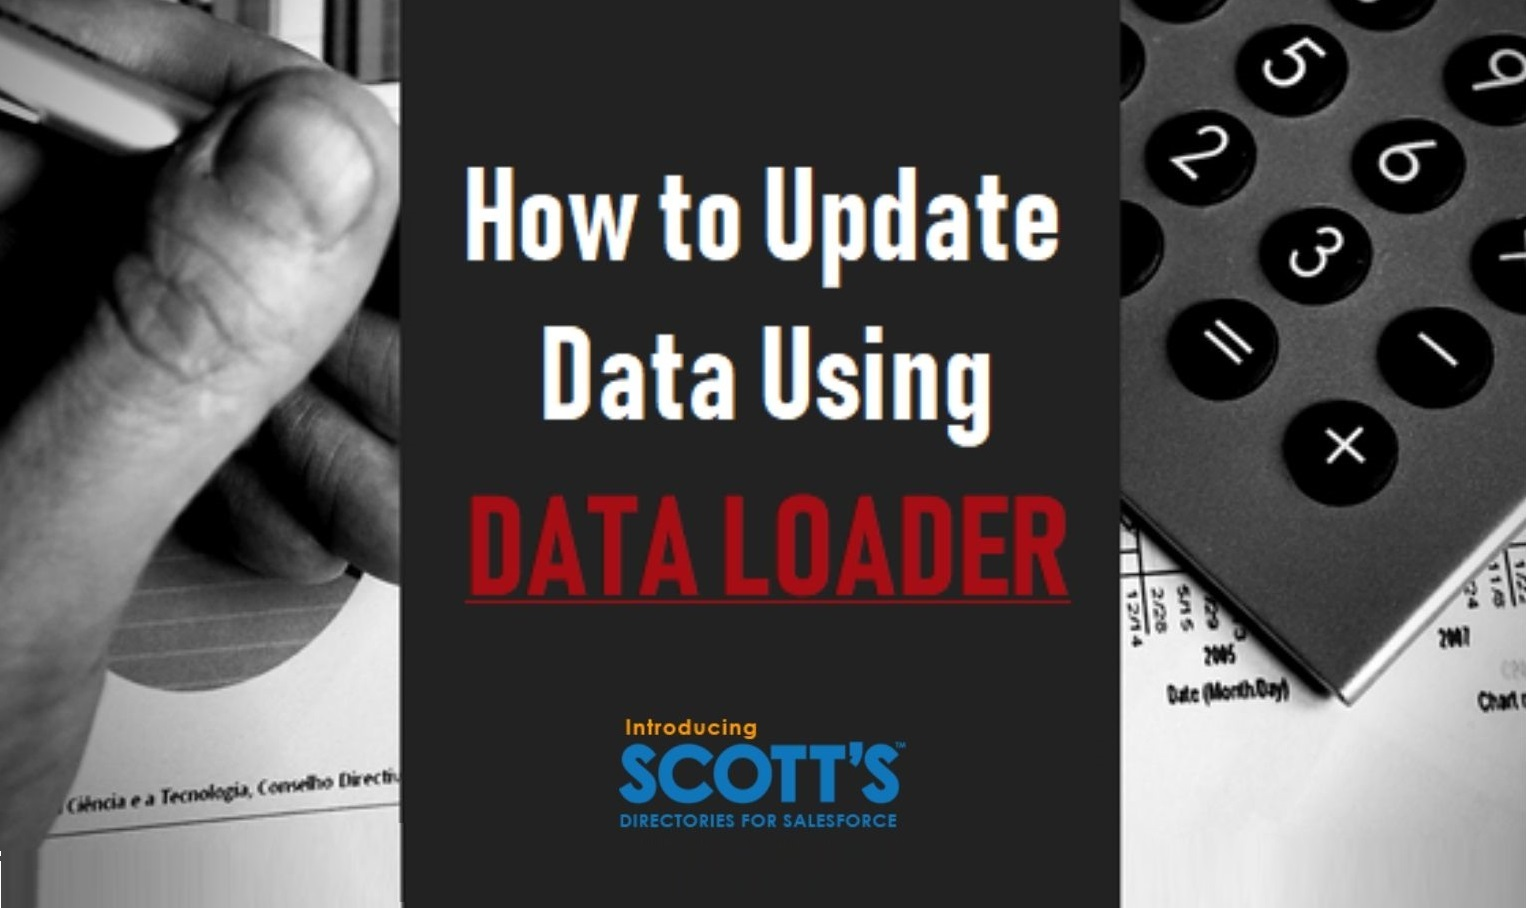 Update Data Using Data Loader